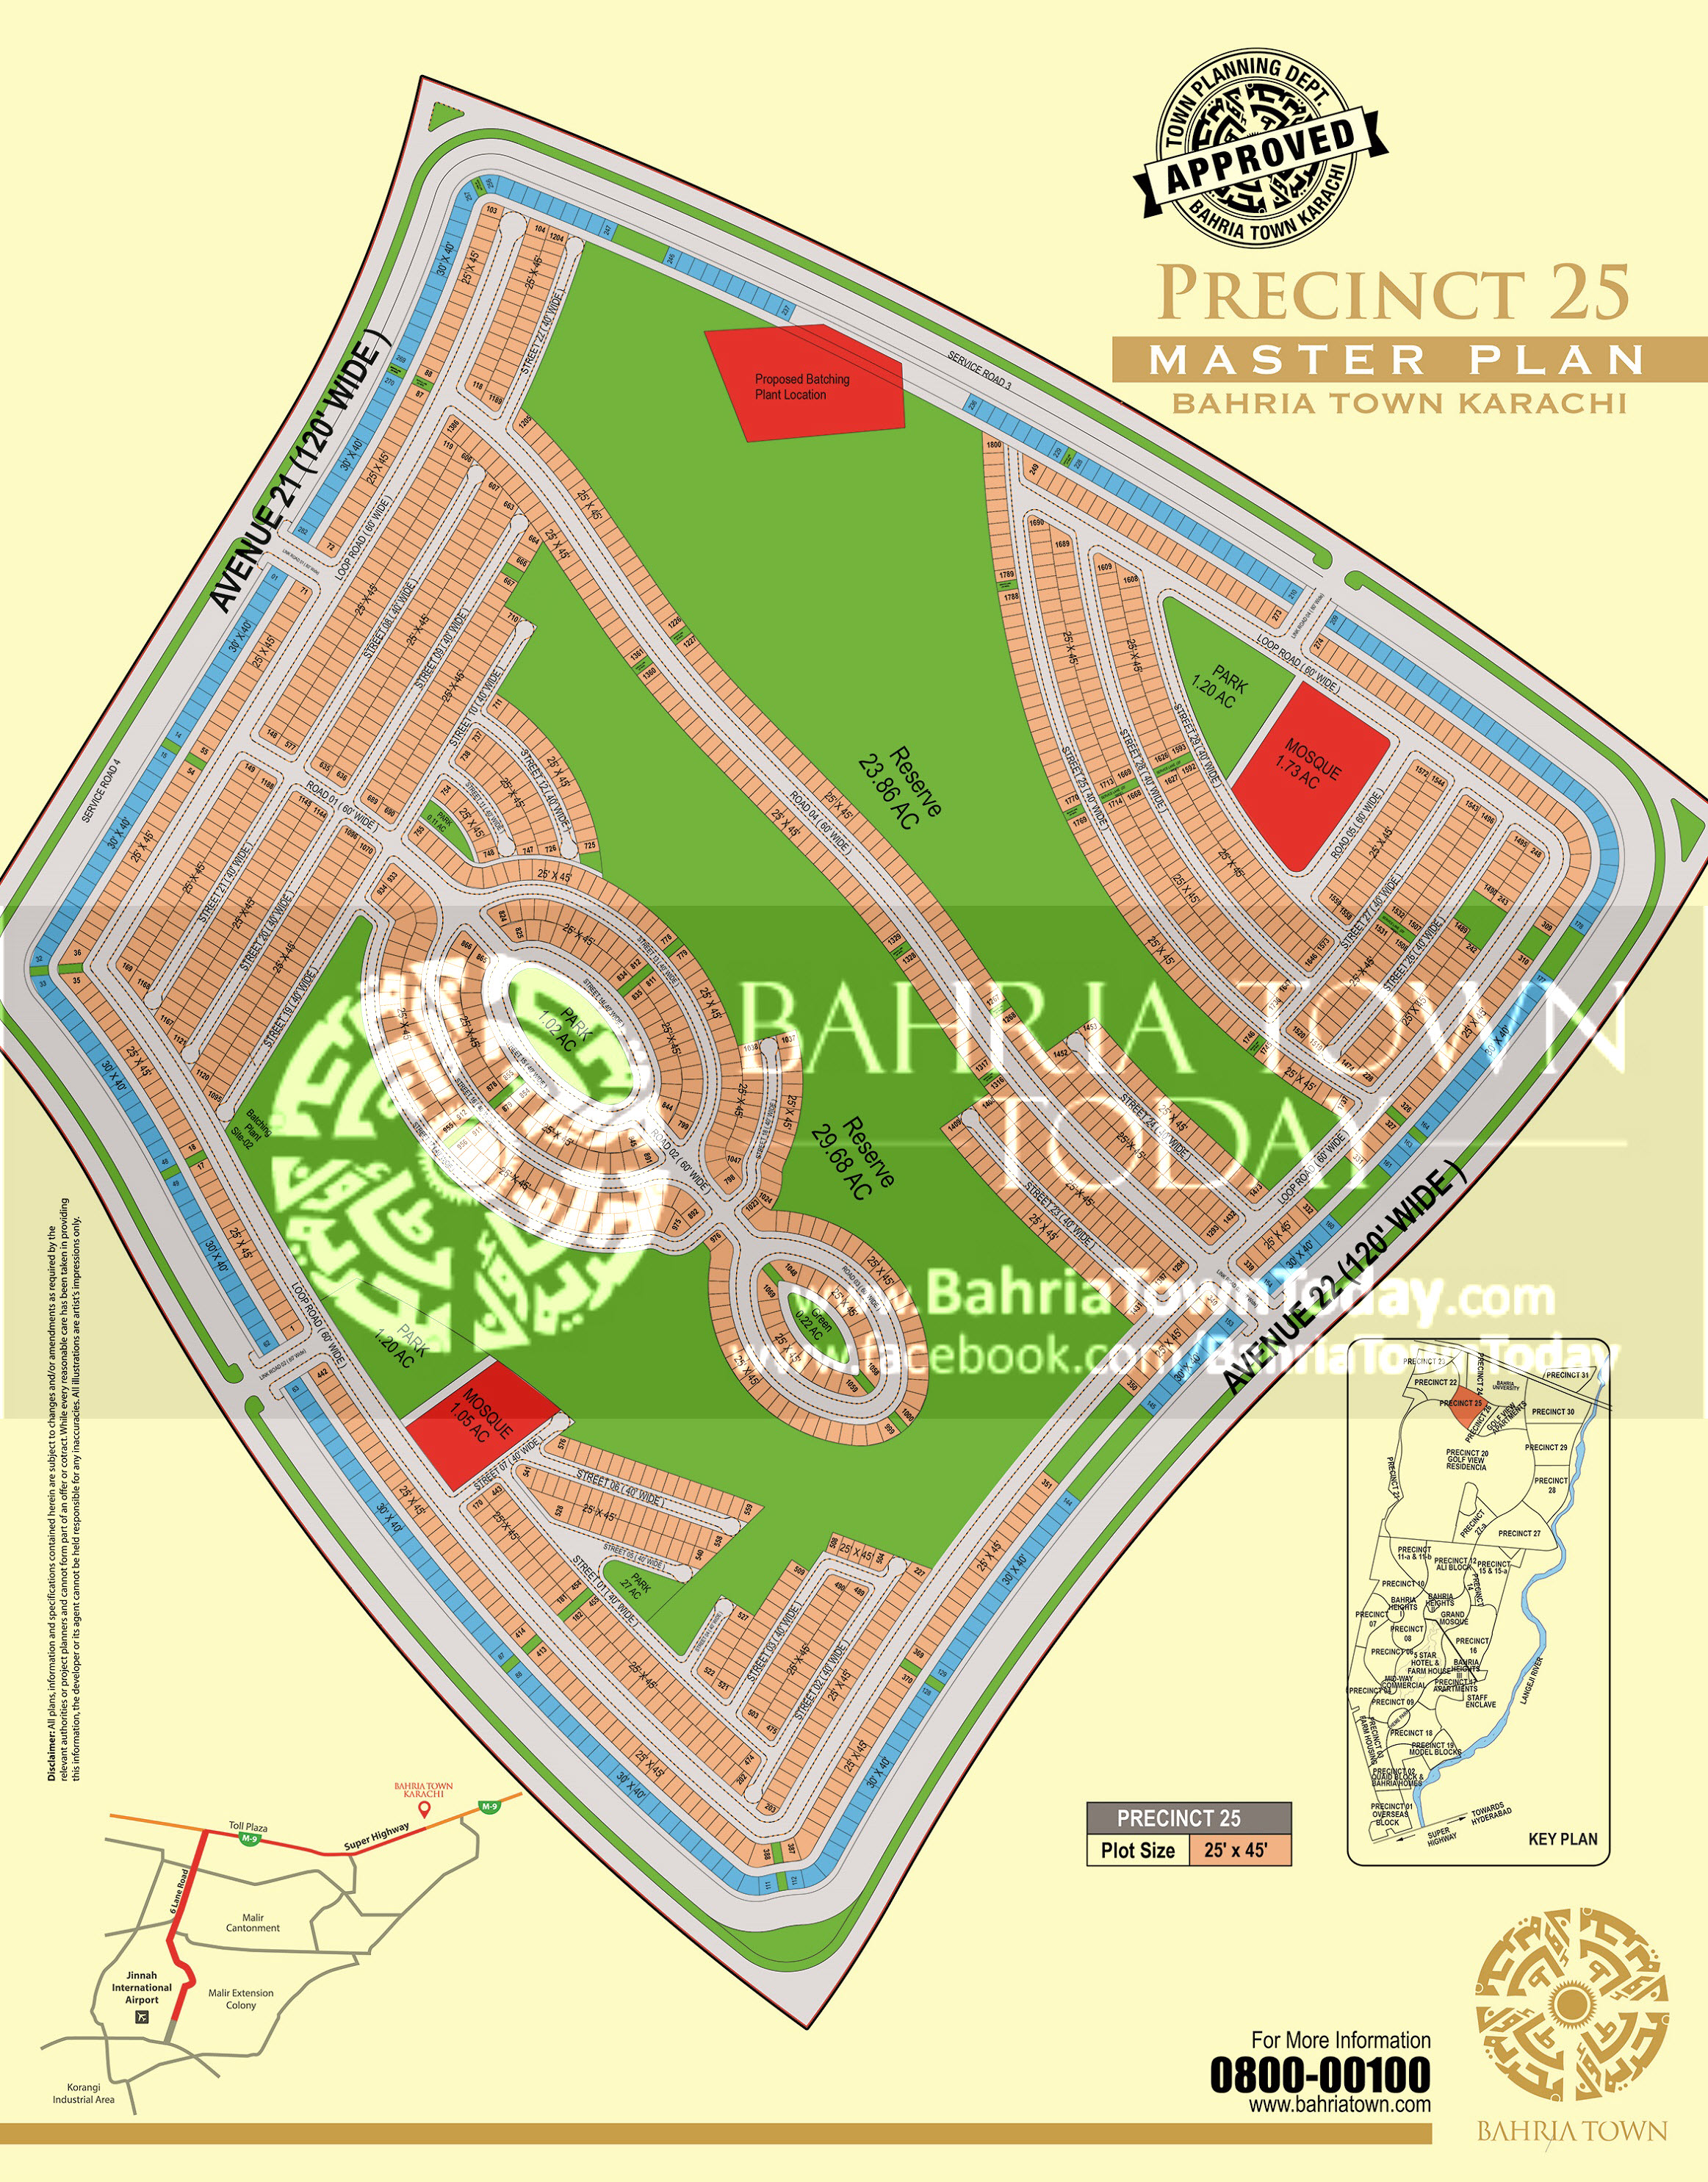 Bahria Town Karachi – Precinct 25 High Resolution Map